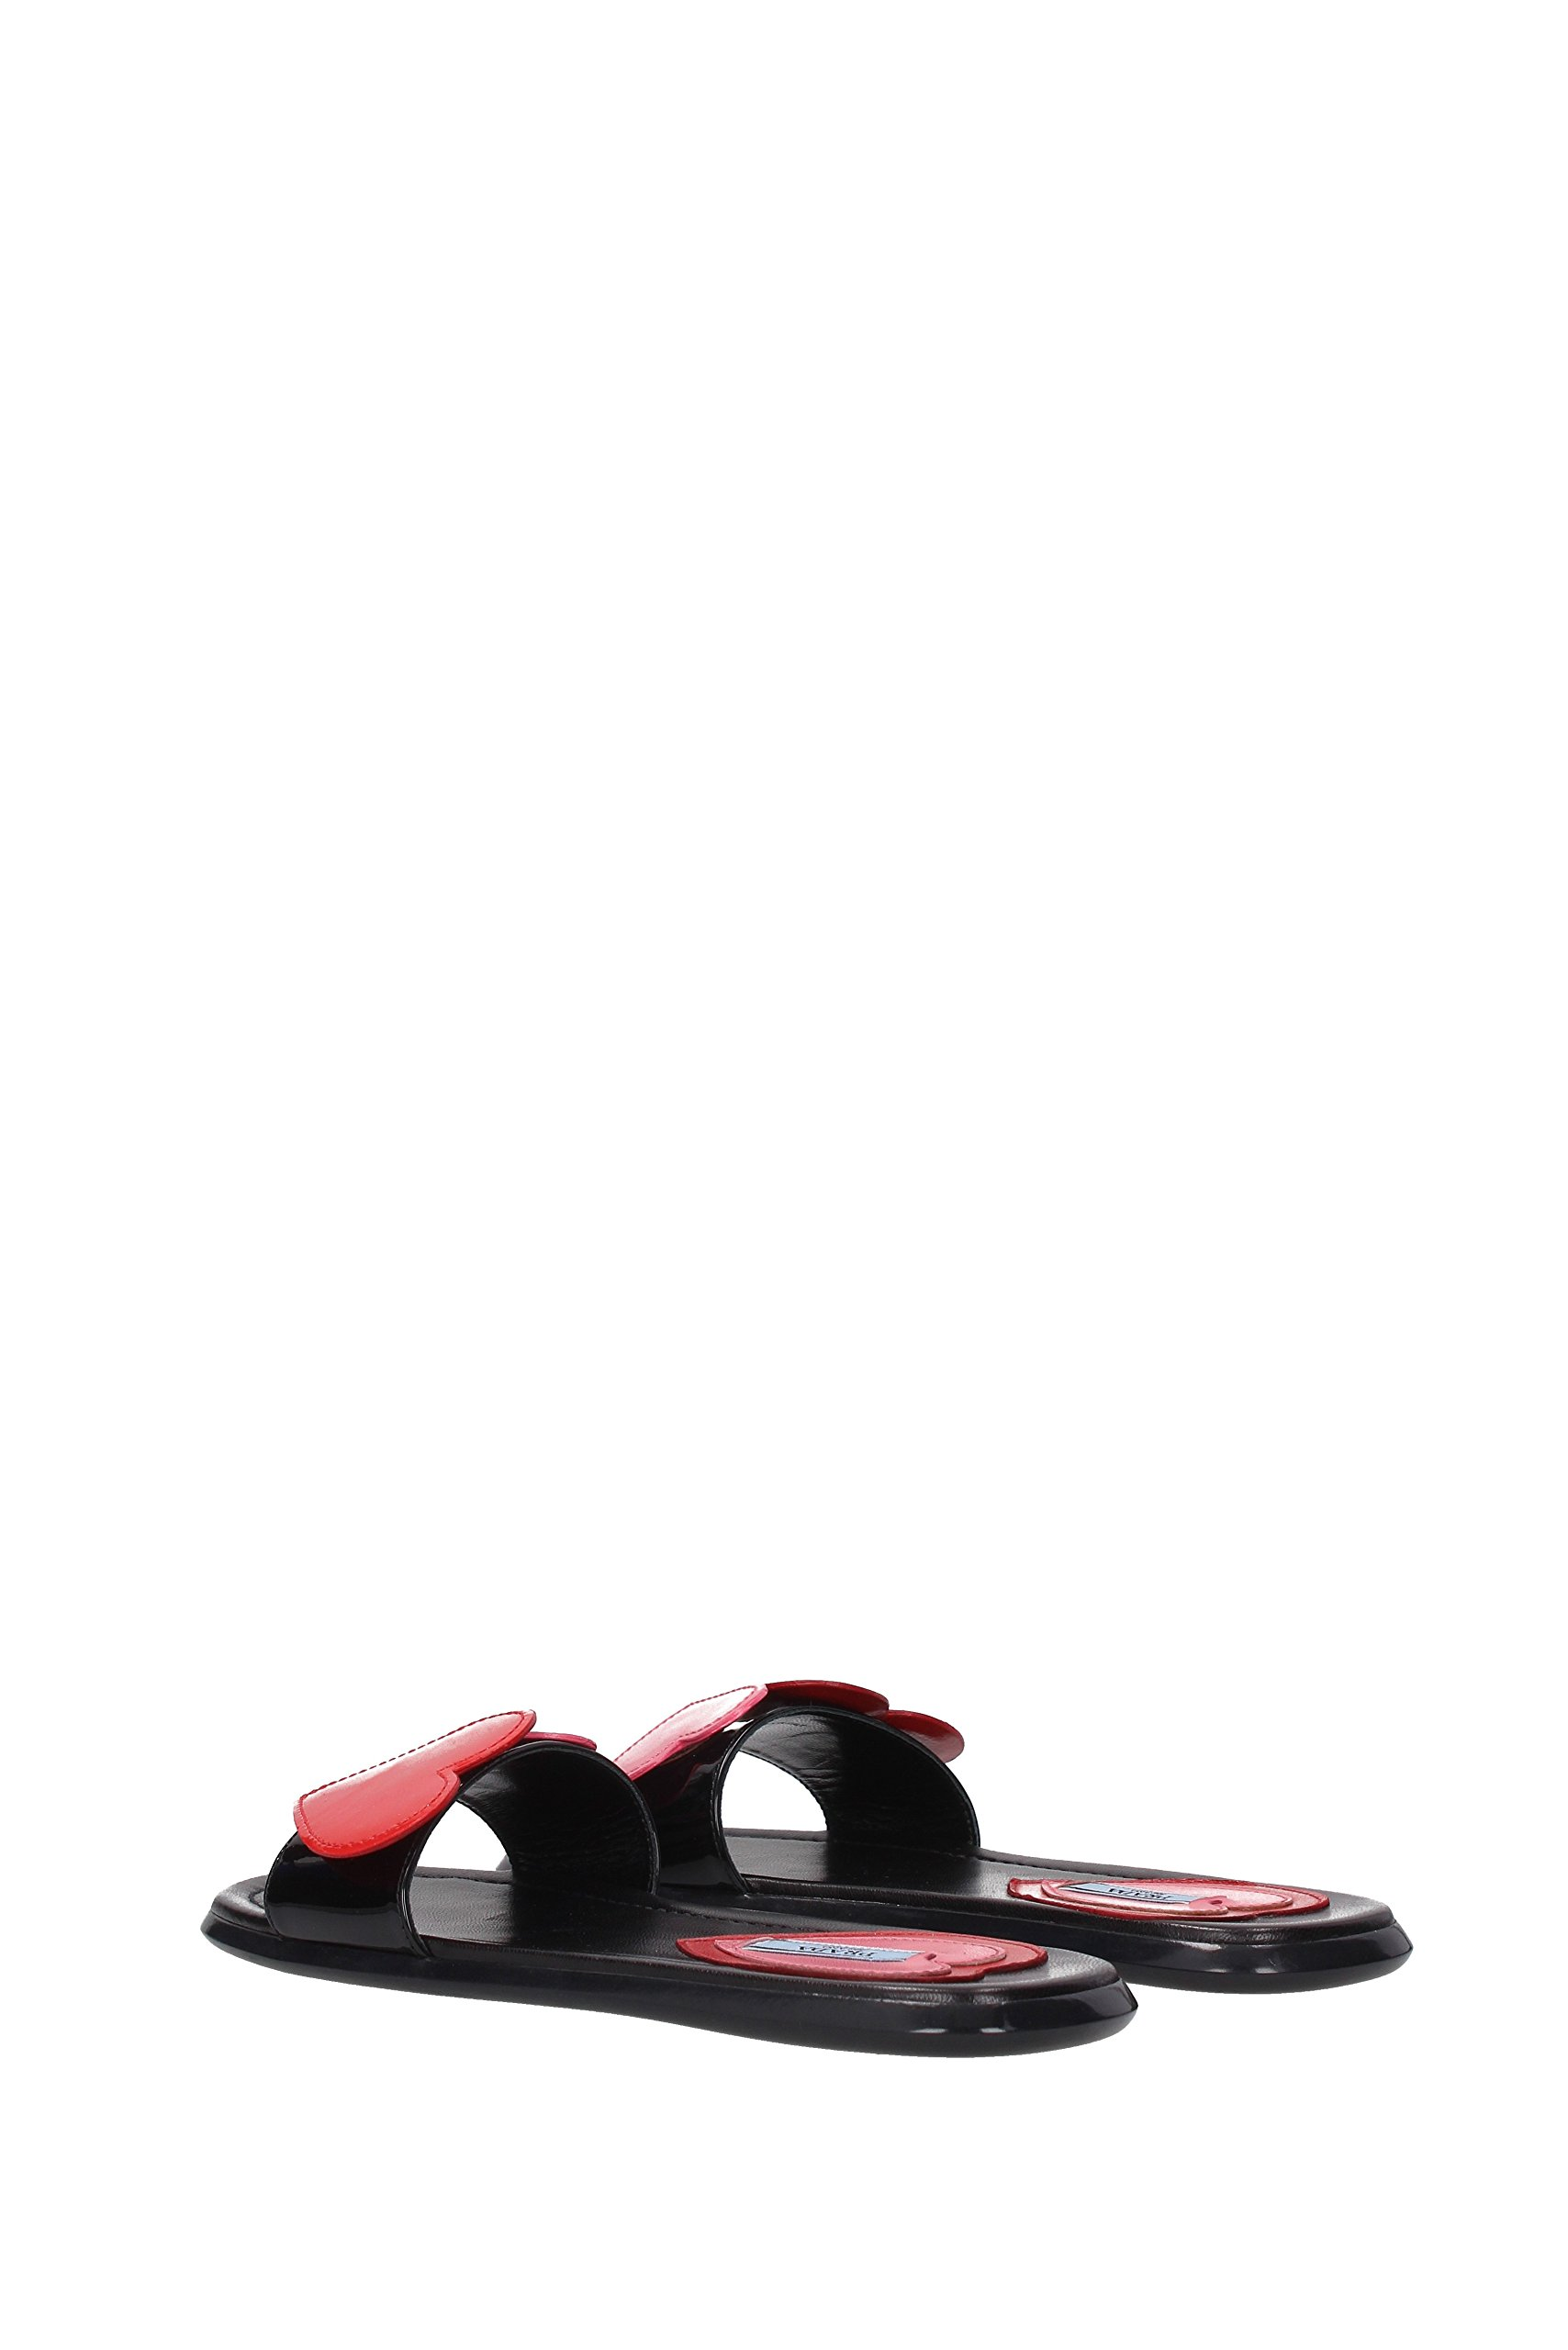 842a75b31 ... Prada Slippers and Clogs Women - Patent Leather (1XX312) UK. Sale